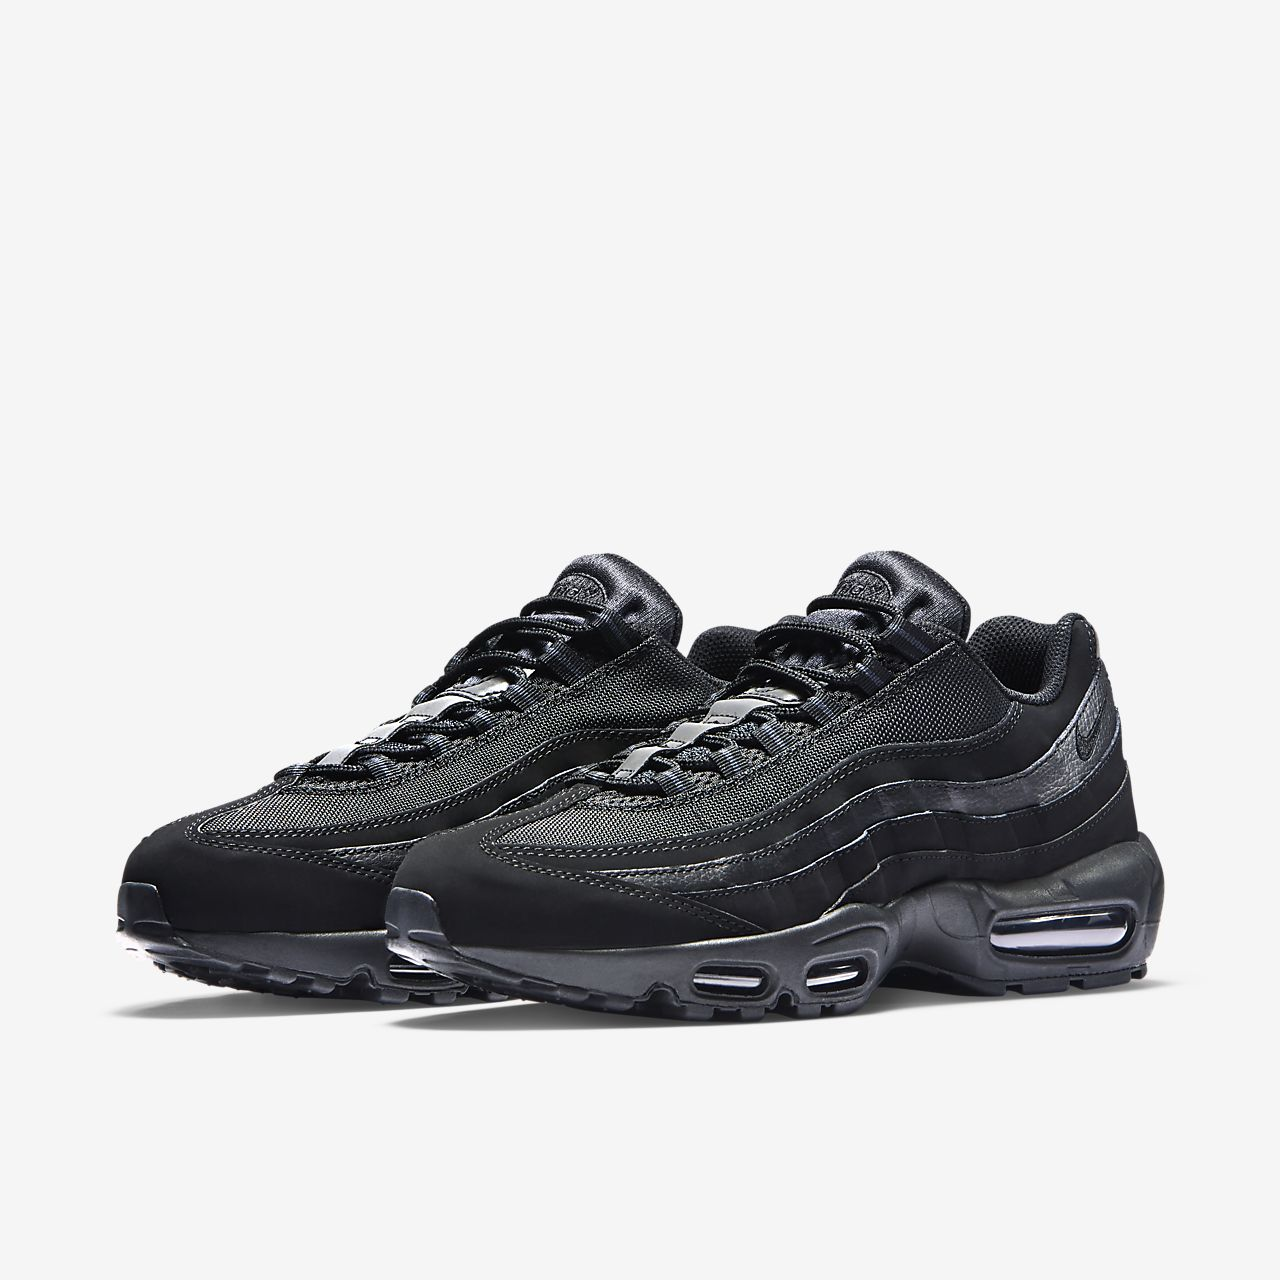 Nike Air Max 95 609048 092 Mens Trainers Black | eBay